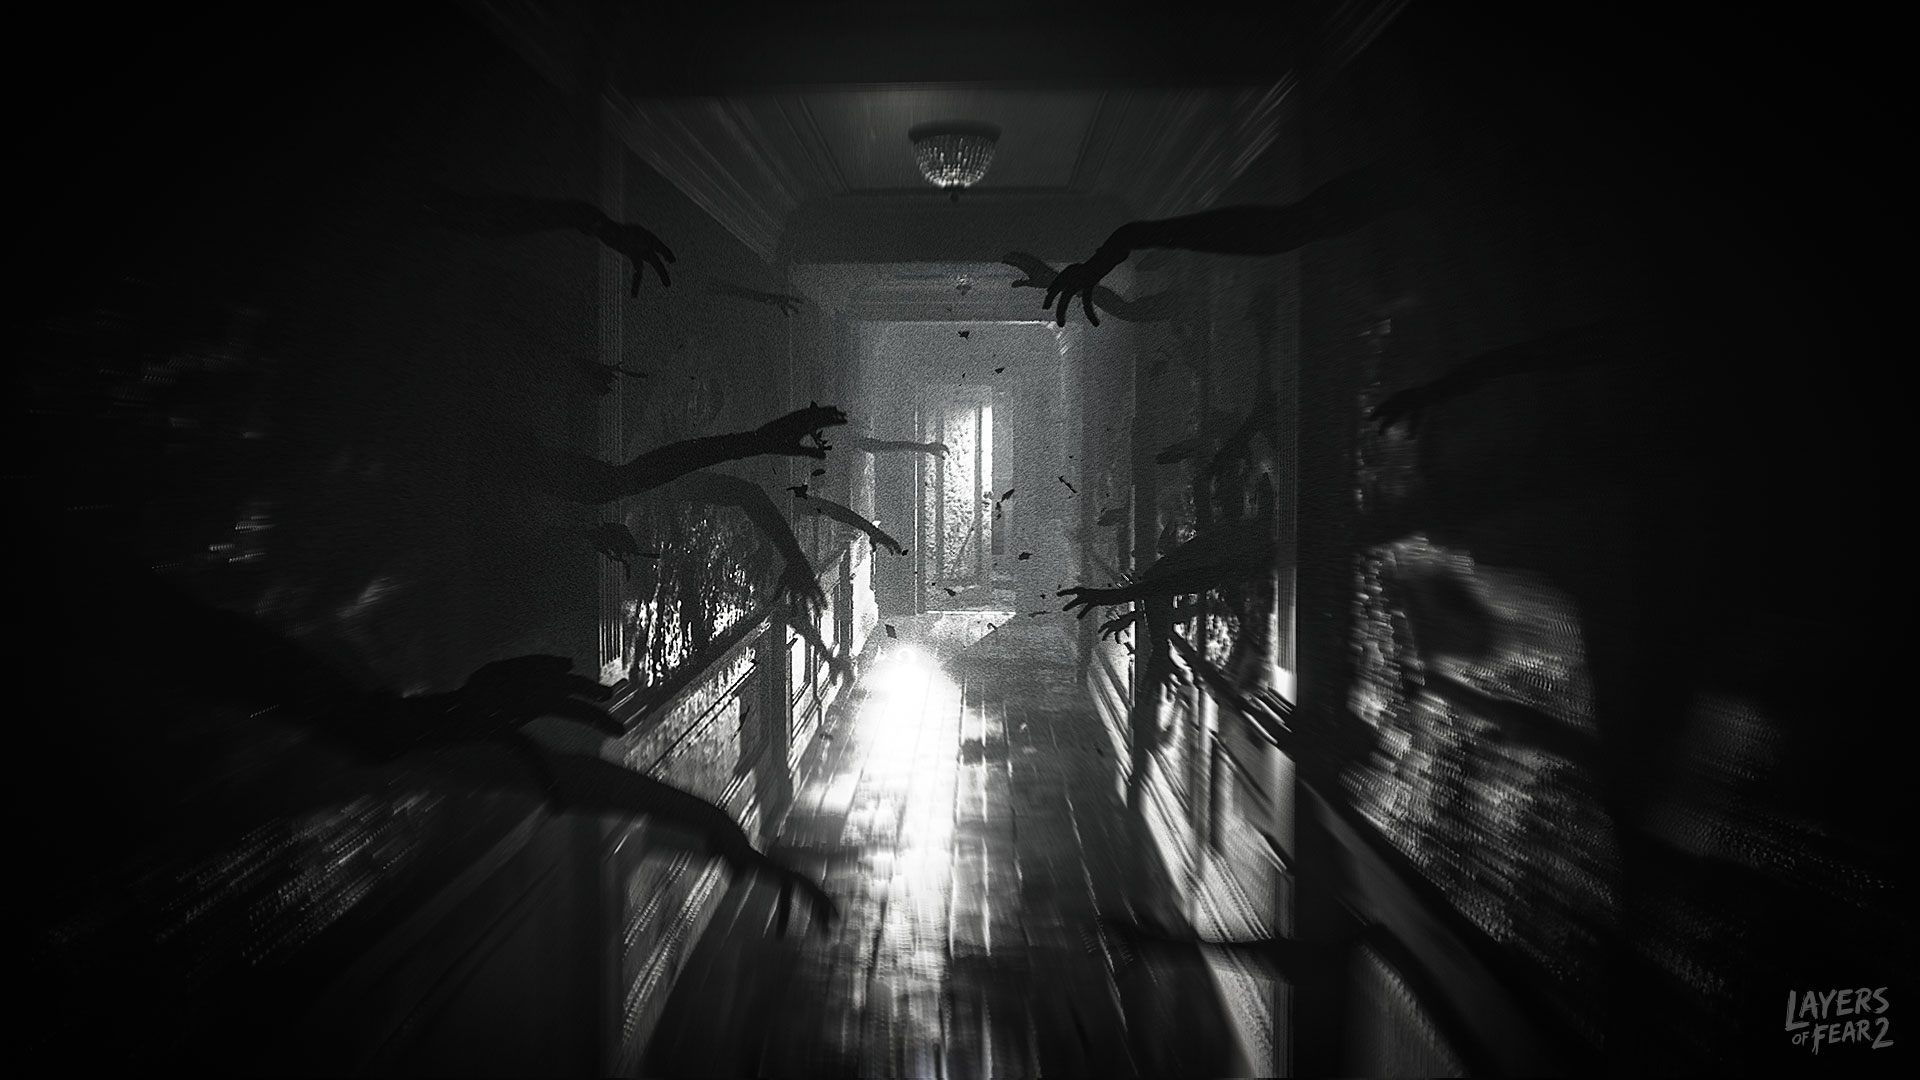 Your day will probably be a lot less stressful if you don't watch this Layers of Fear 2 gameplay demo screenshot